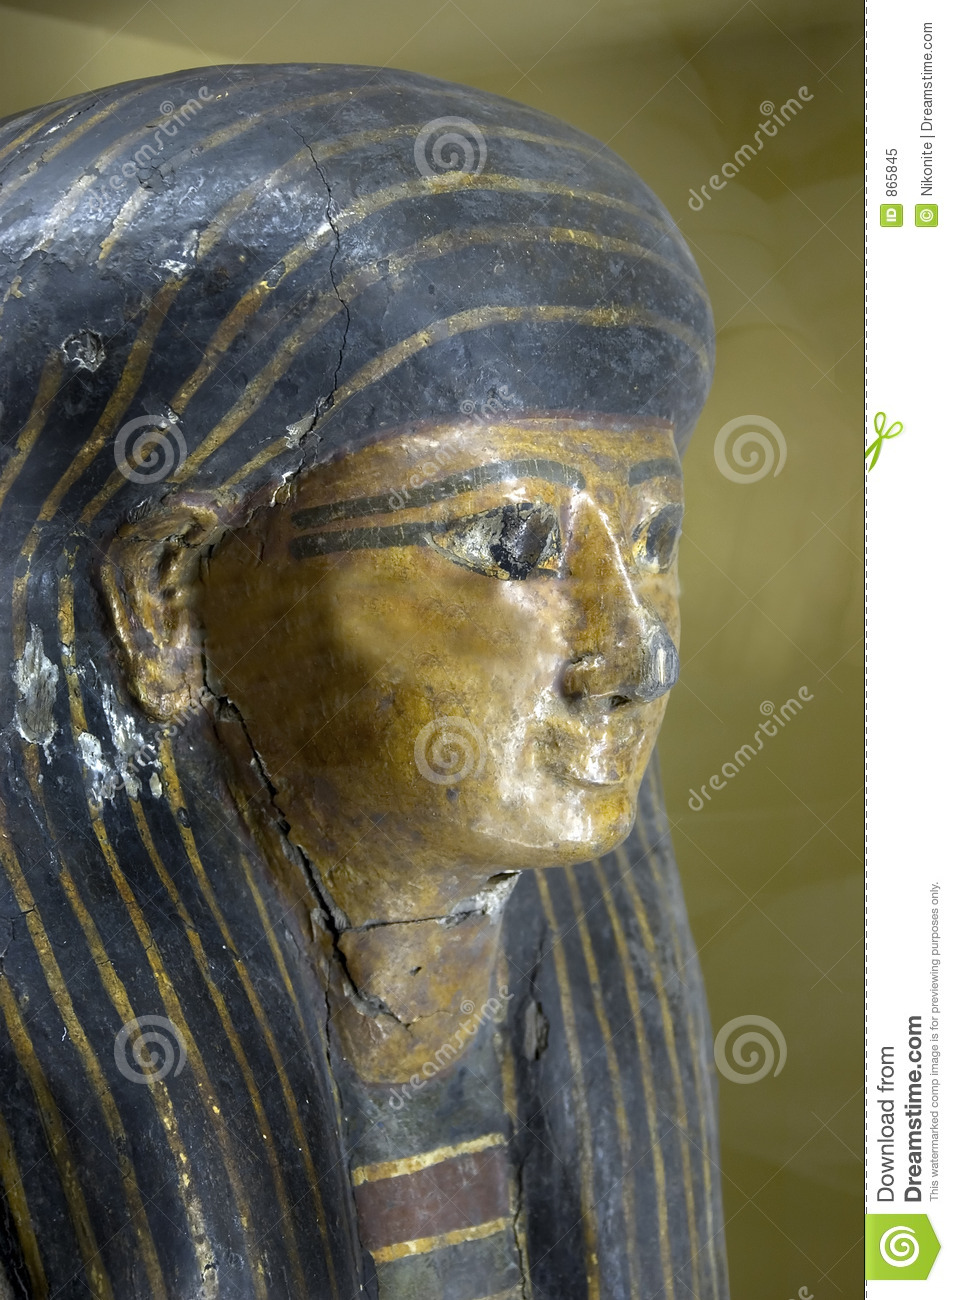 What Is Gold Used For >> Egyptian Sarcophagus Head Editorial Image - Image: 865845